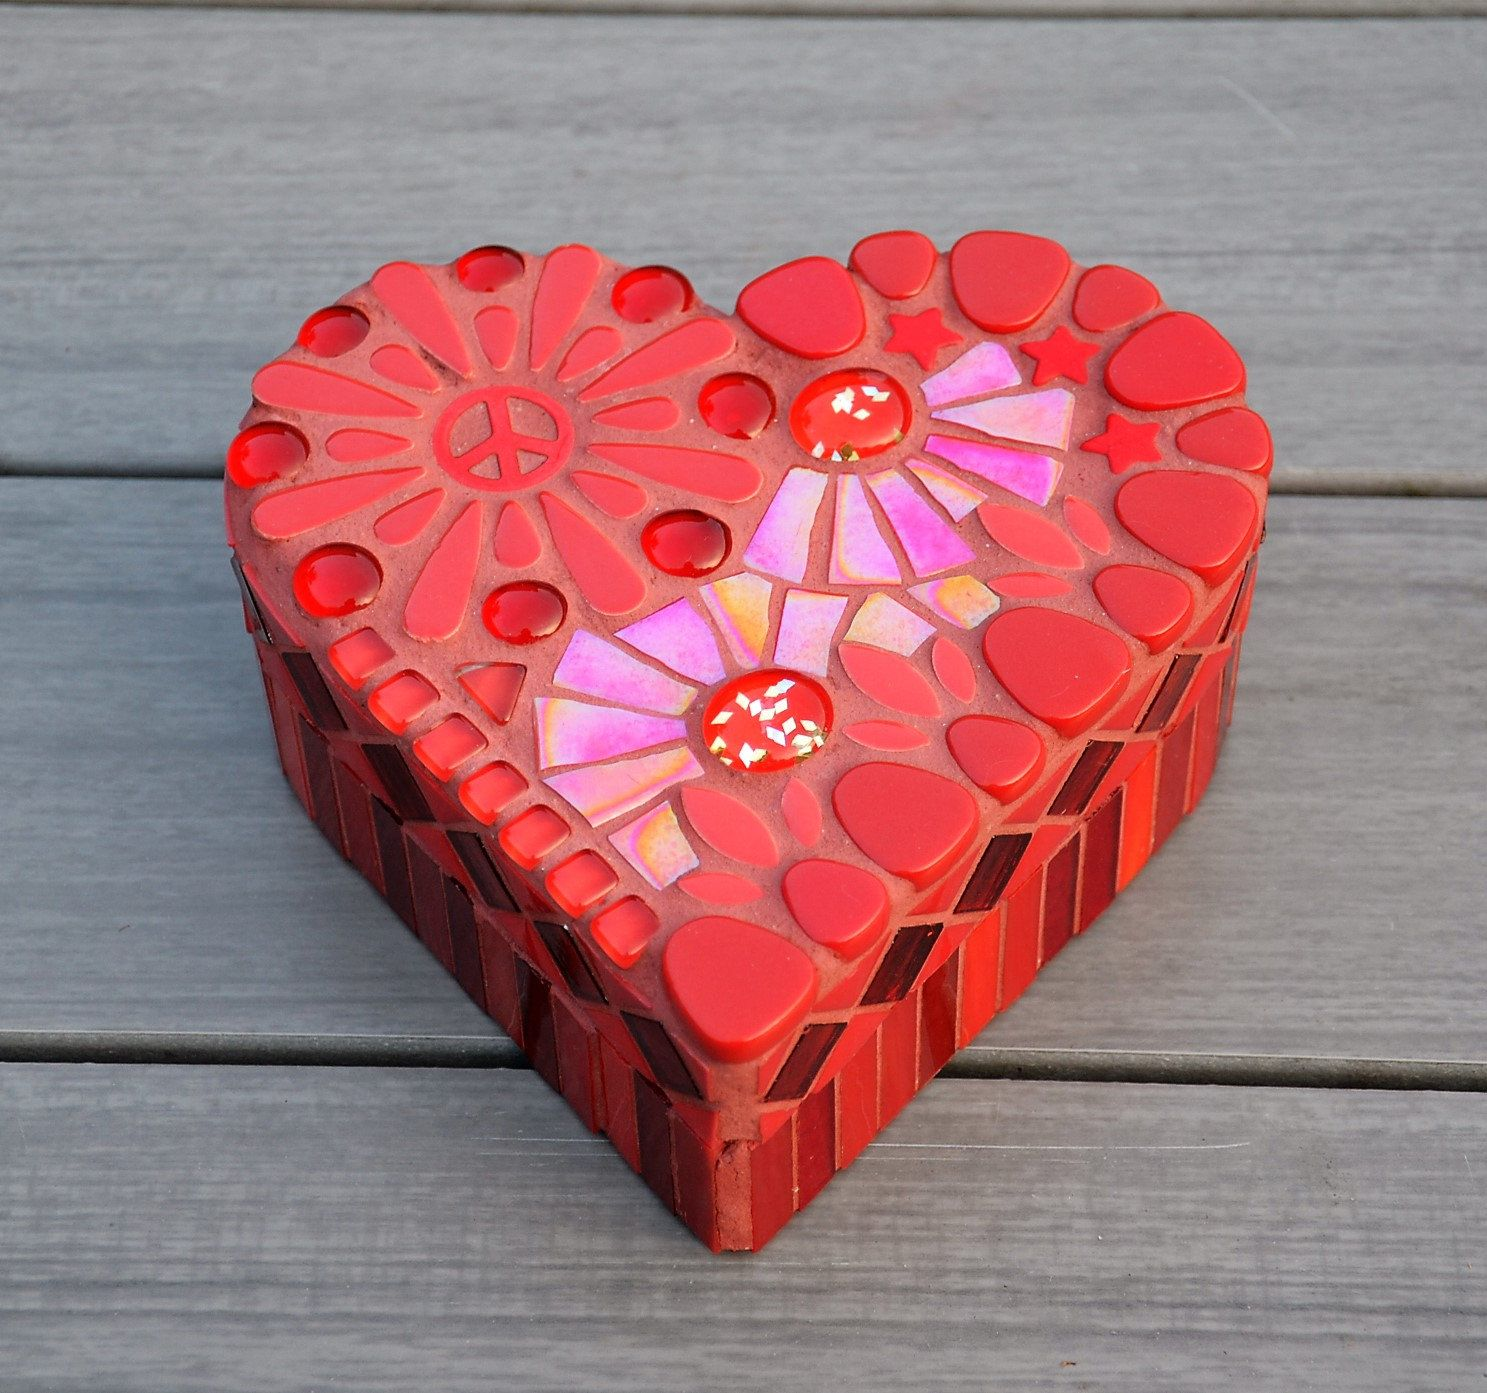 Red Glass Mosaic Heart Shaped Box Etsy Heart Shape Box Mosaic Glass Mosaic